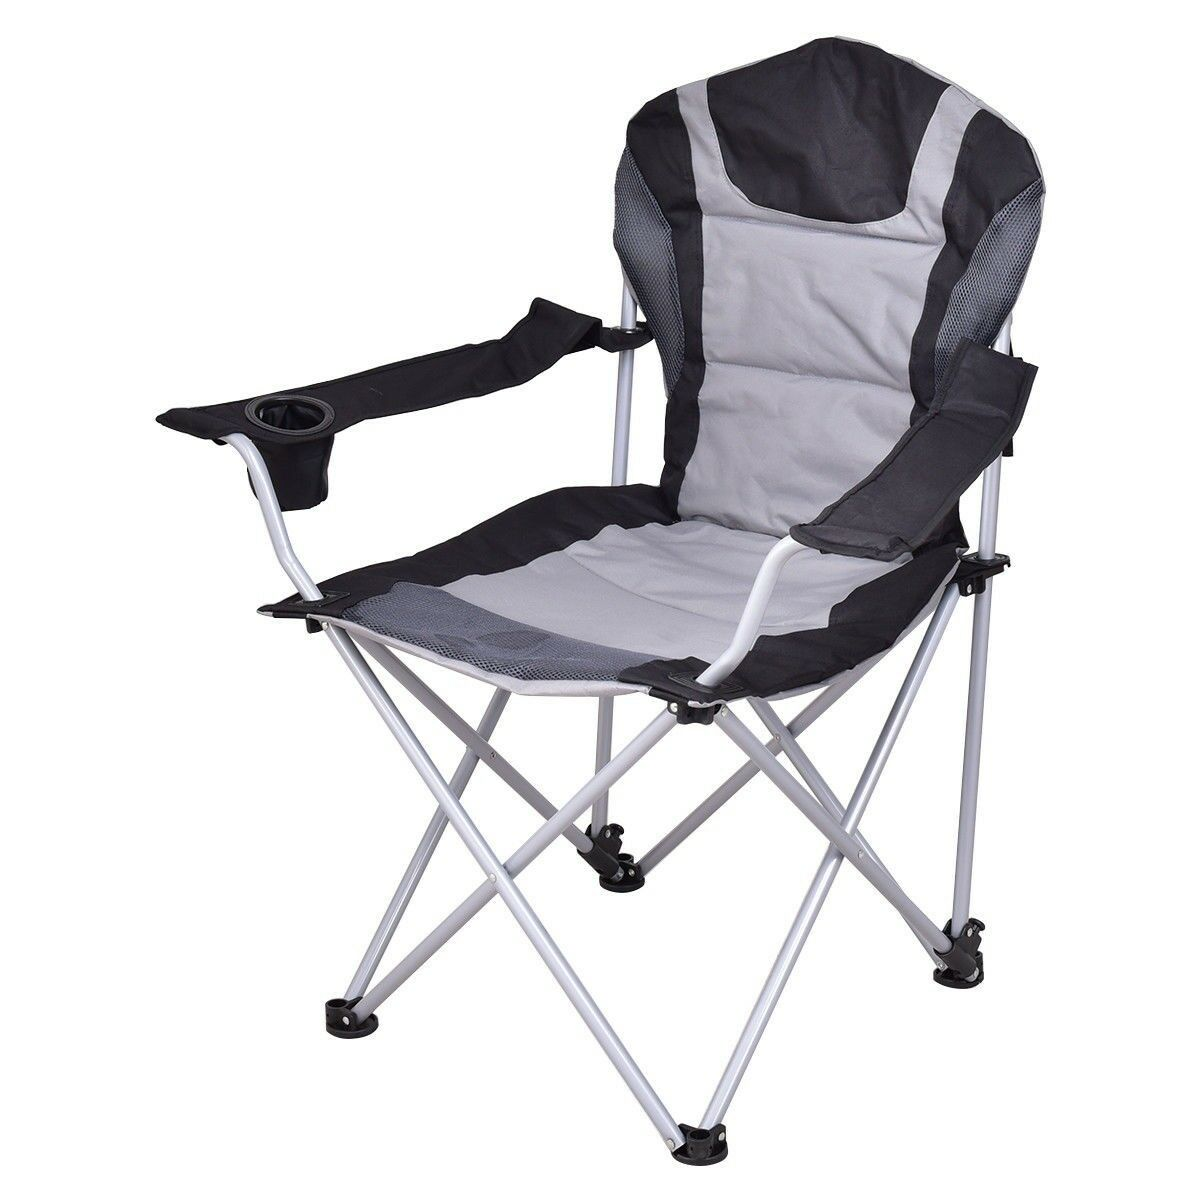 Beach Picnic Outdoor Portable Folding Fishing Camping Chair Seat W  Cup Holder